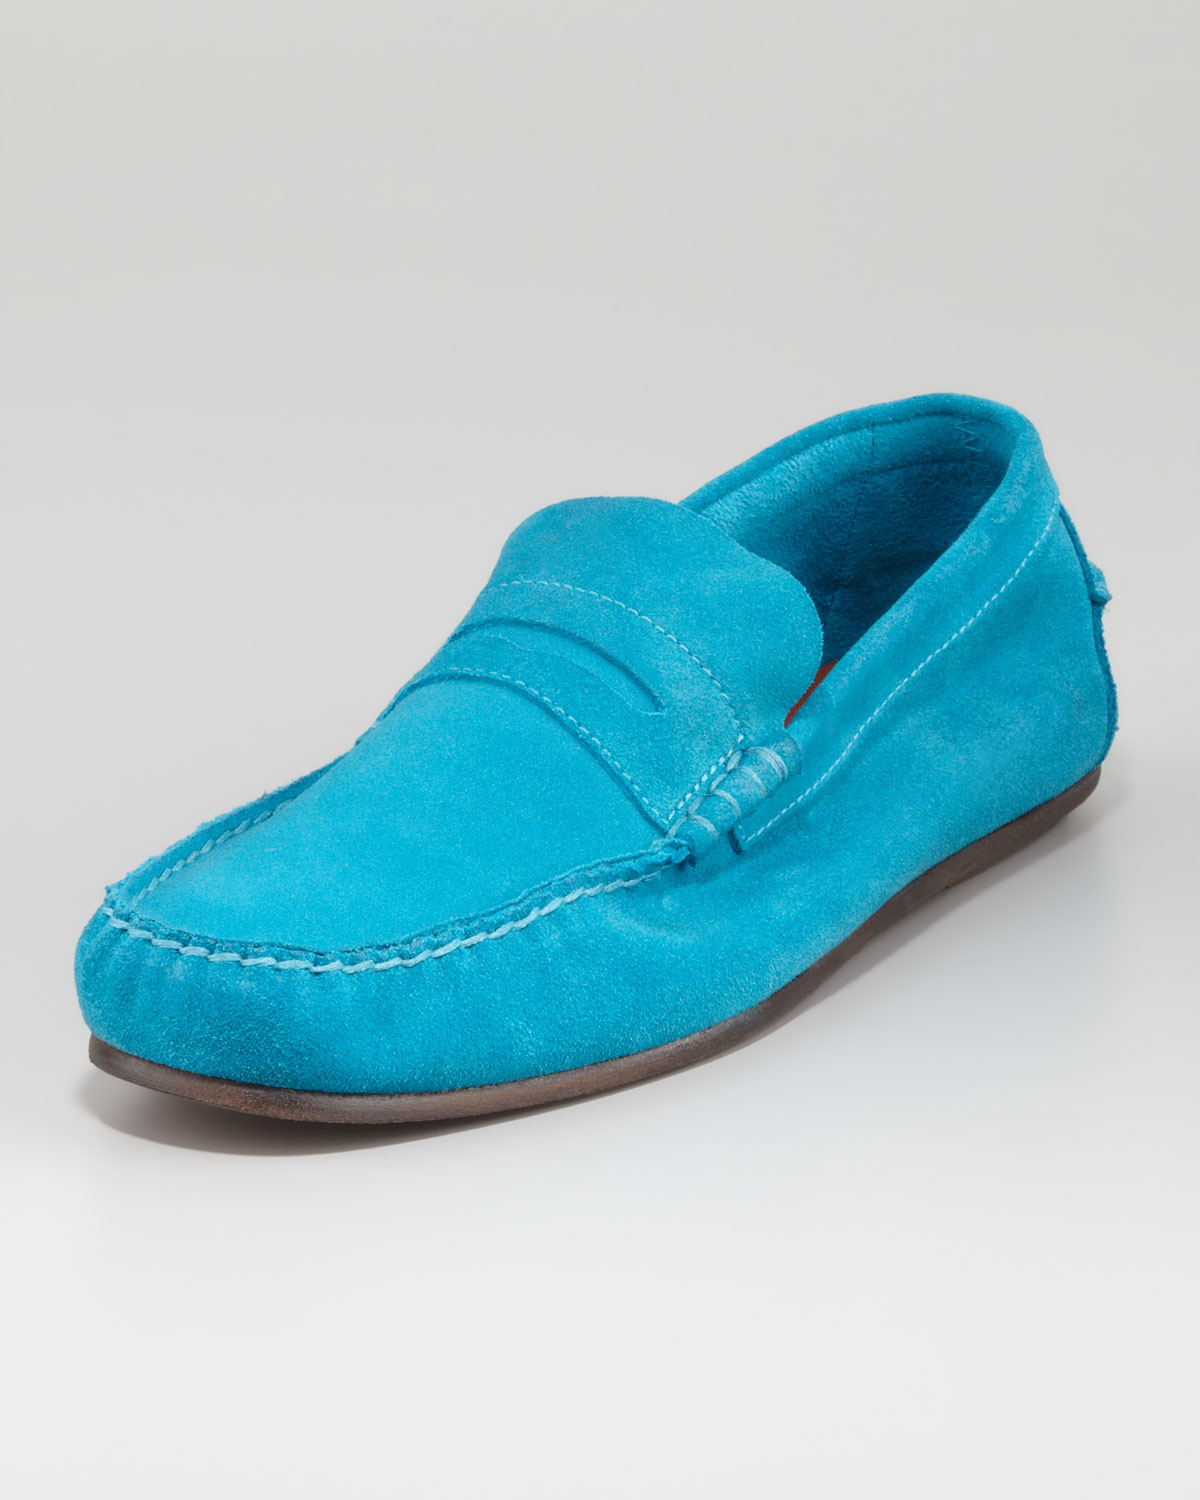 Mens Turquoise Loafers Gold Spiked Loafers Mens